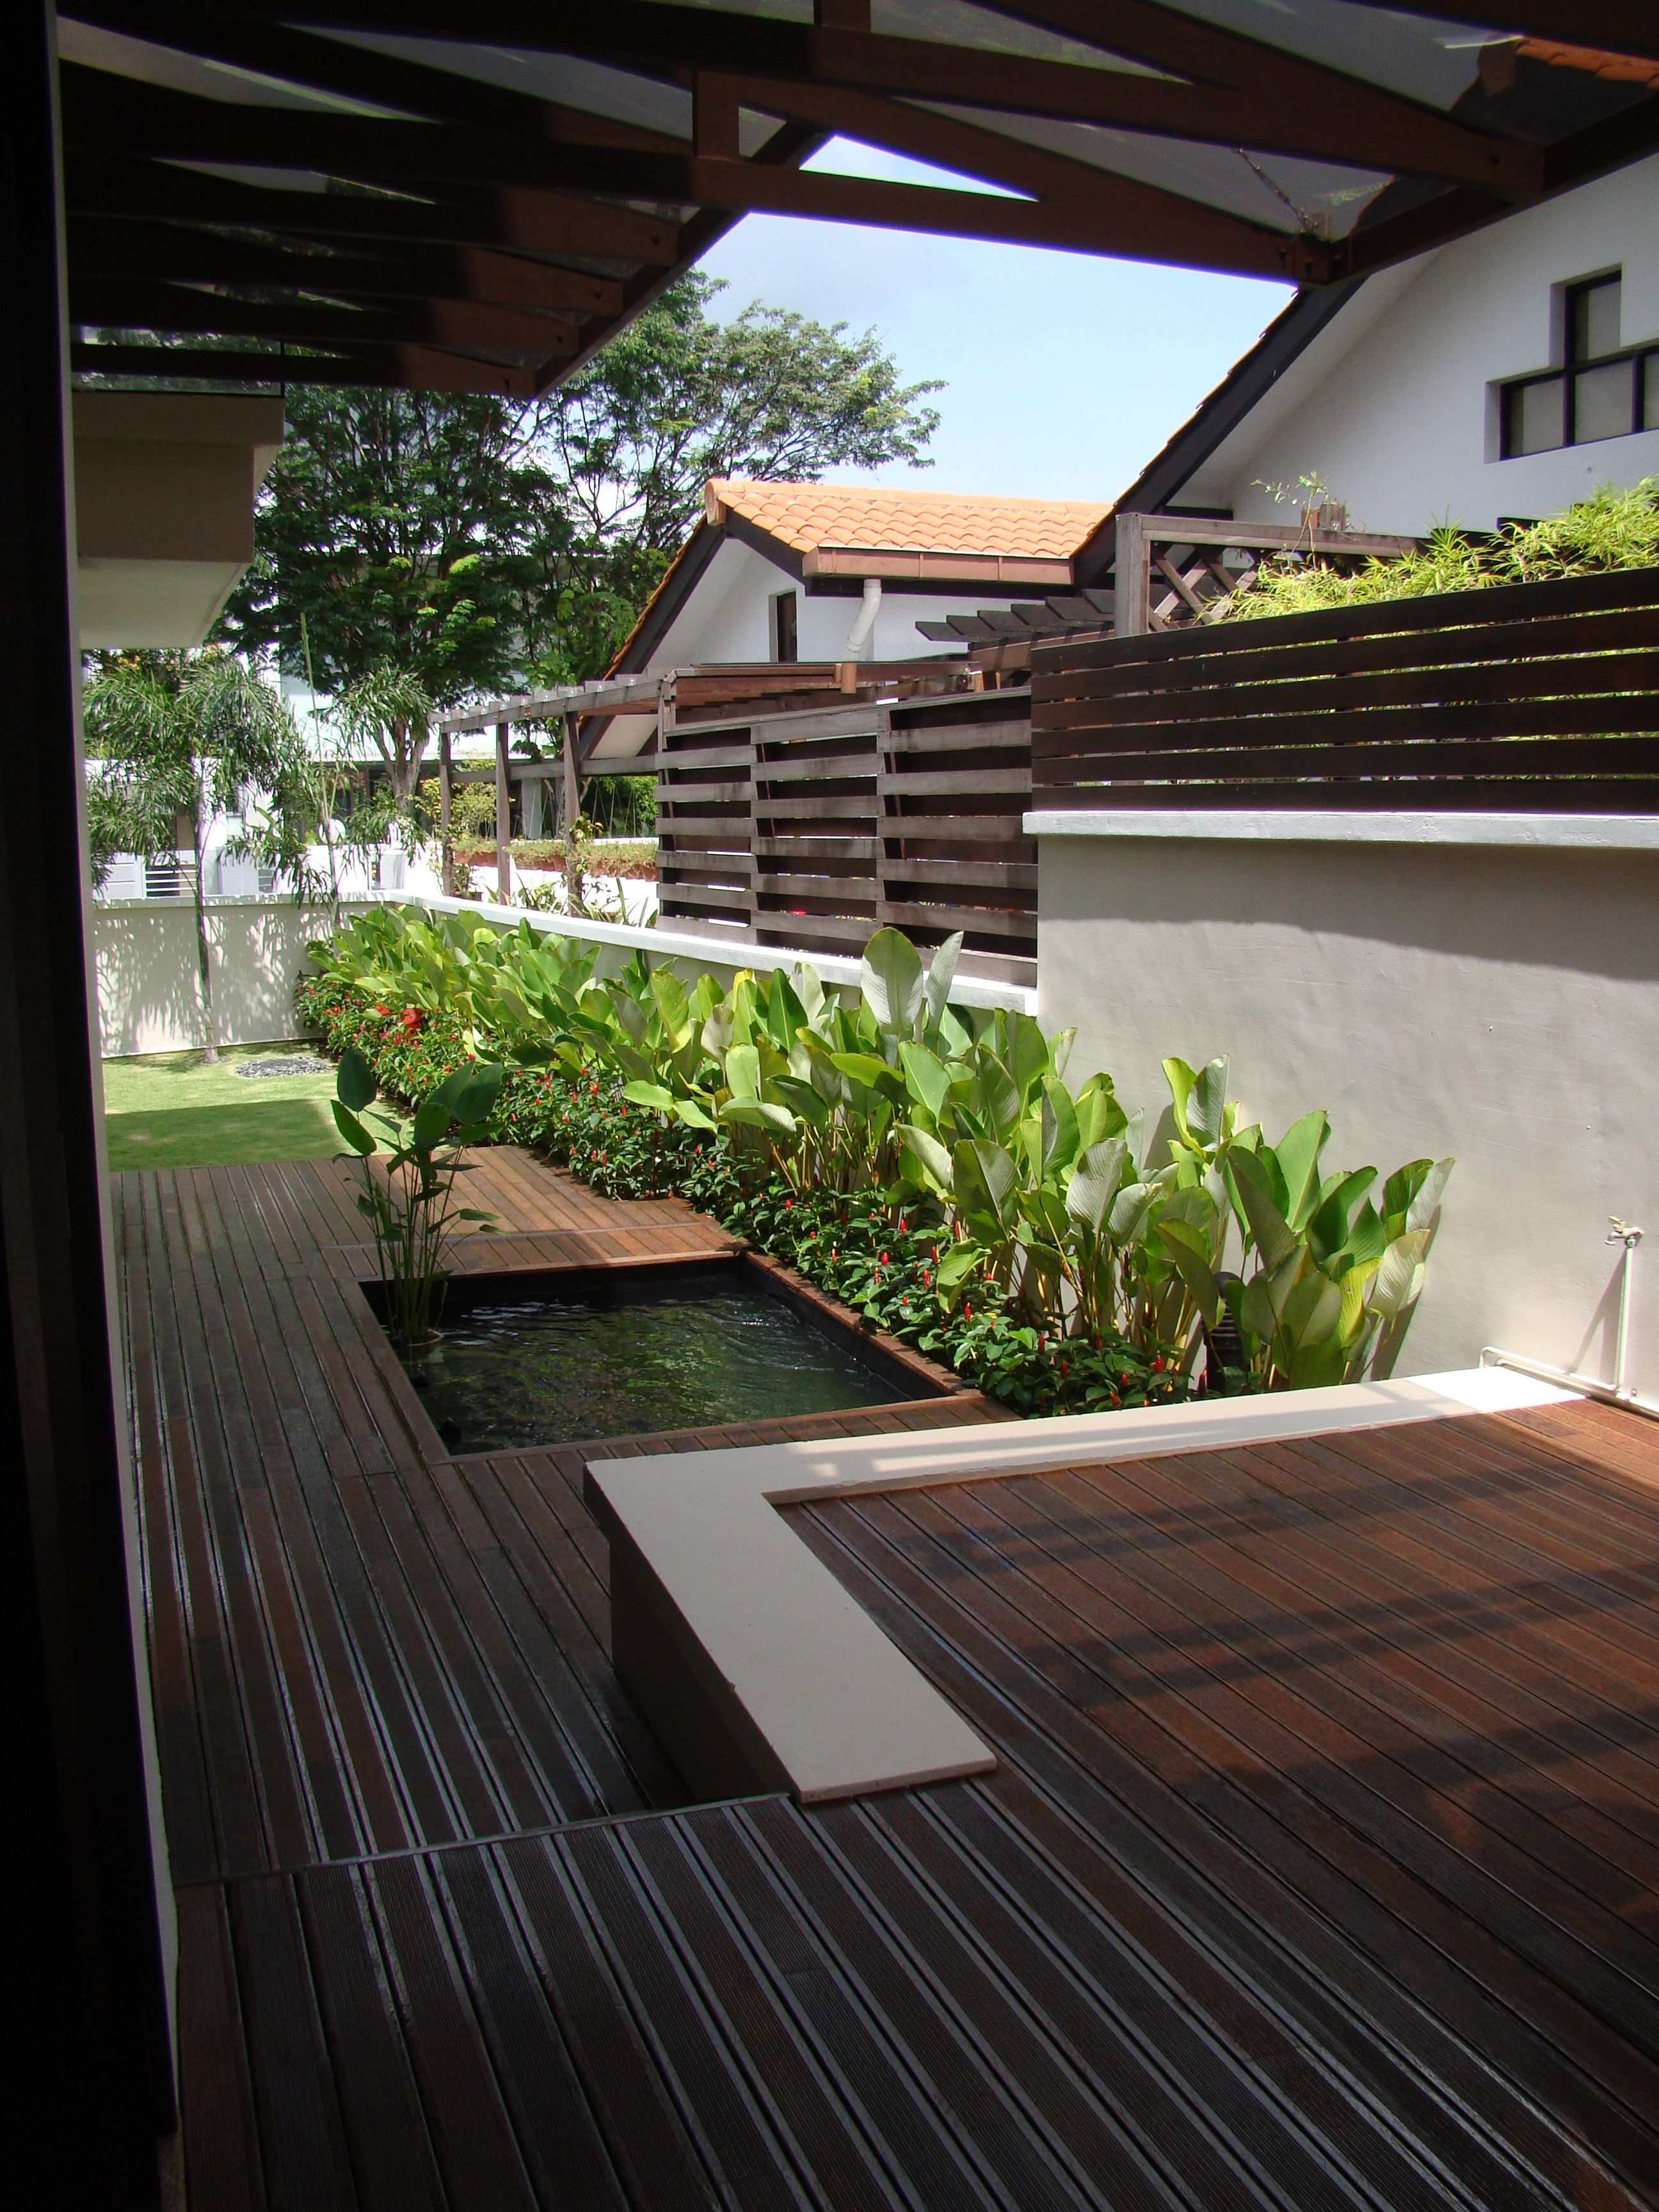 Evorich Outdoor Decking Collection Palm Wood Decking Palm Wood Is A Renewable Natural Resource That Makes It Very Eco Friendly Outdoor Decking Timbe